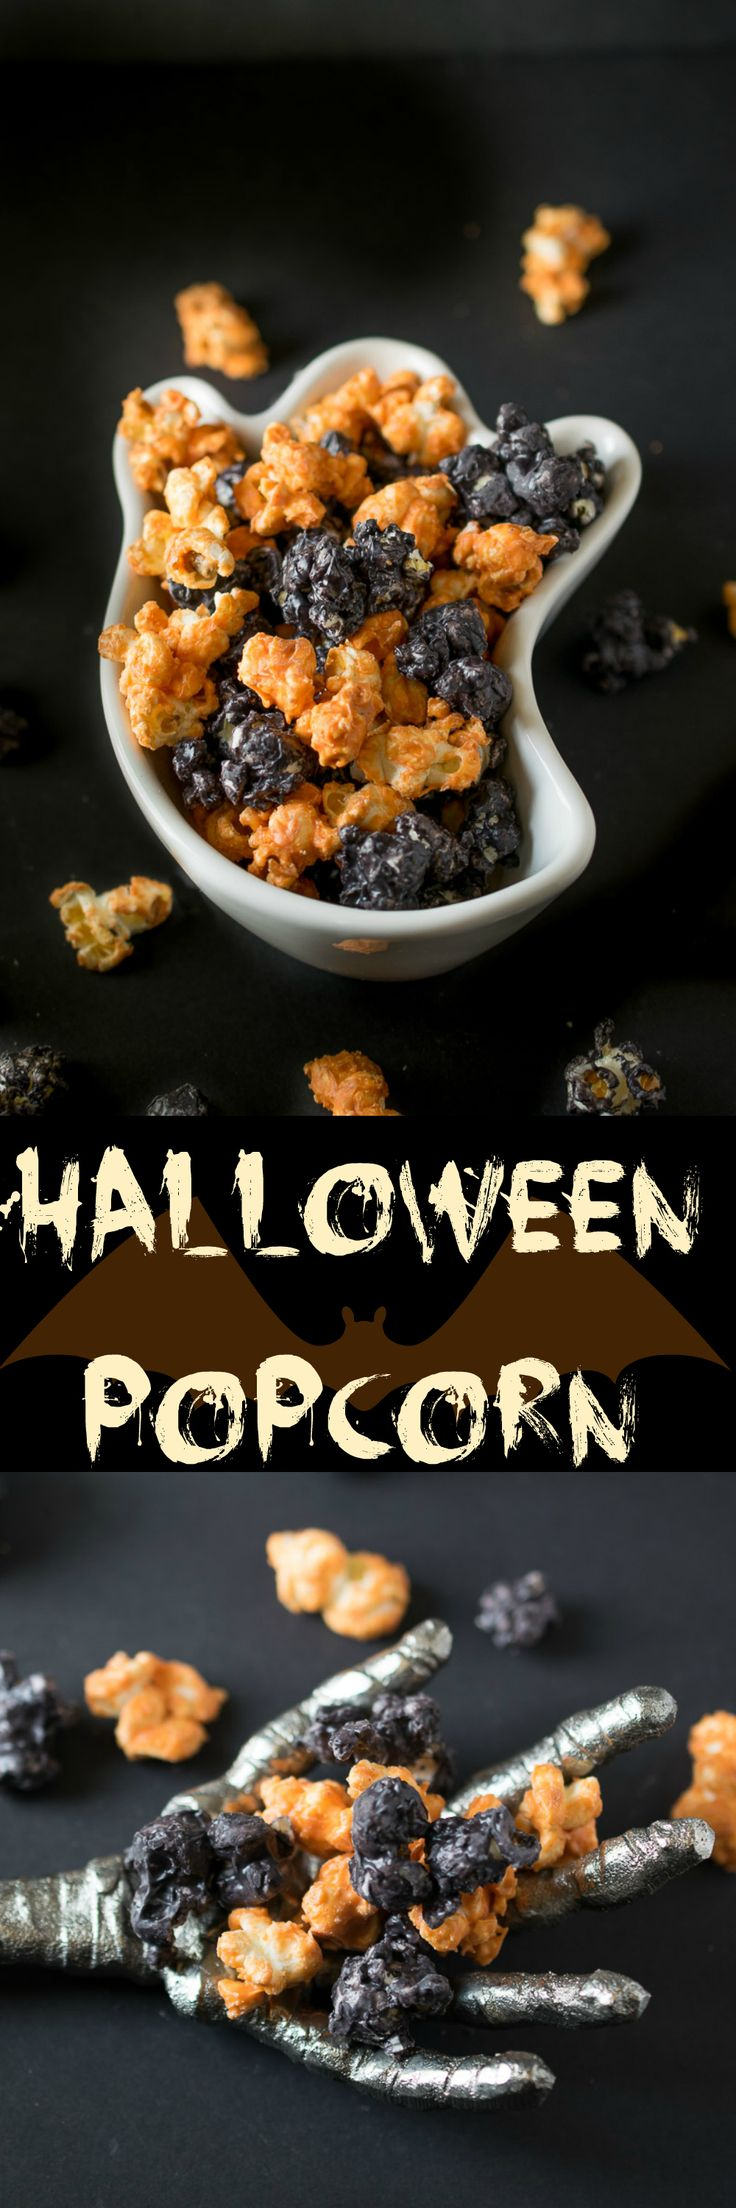 Popcorn is coated in orange and black candy melts for a spooky treat. Easy snacking for entertaining or for trick or treating.